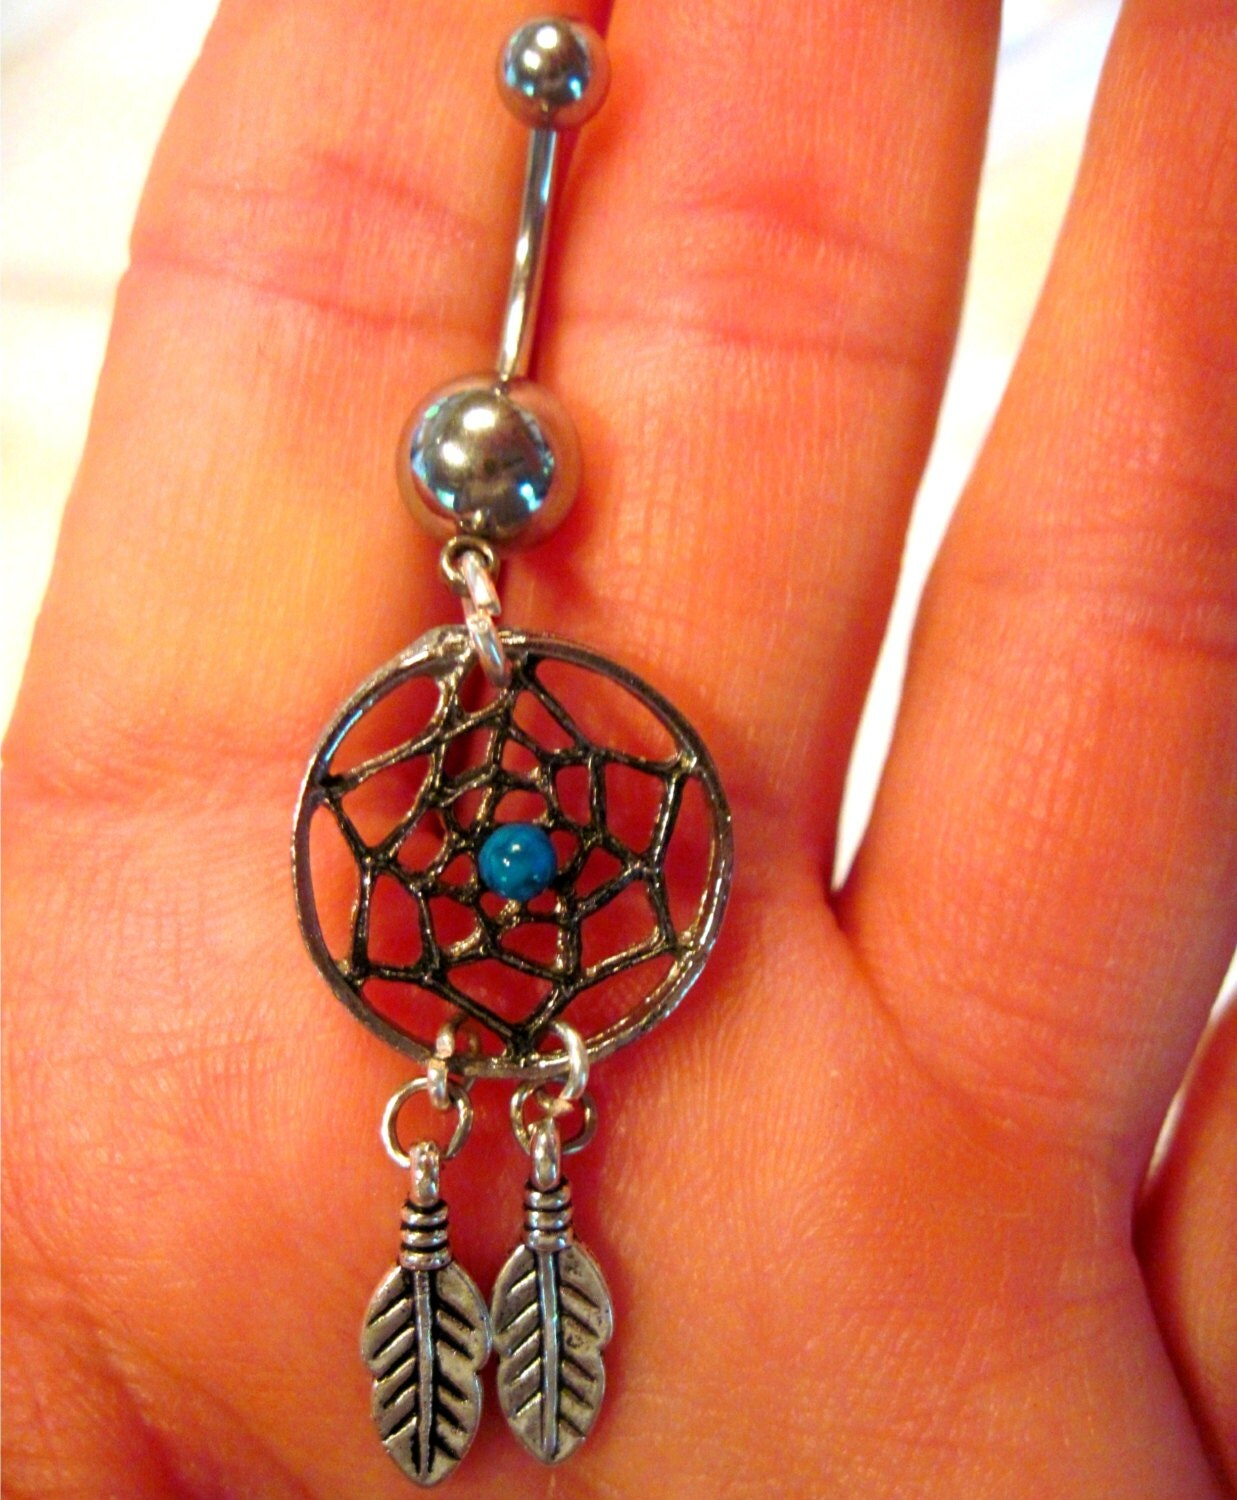 Navel Belly Button Ring Dream Catcher by ArianrhodWolfchild